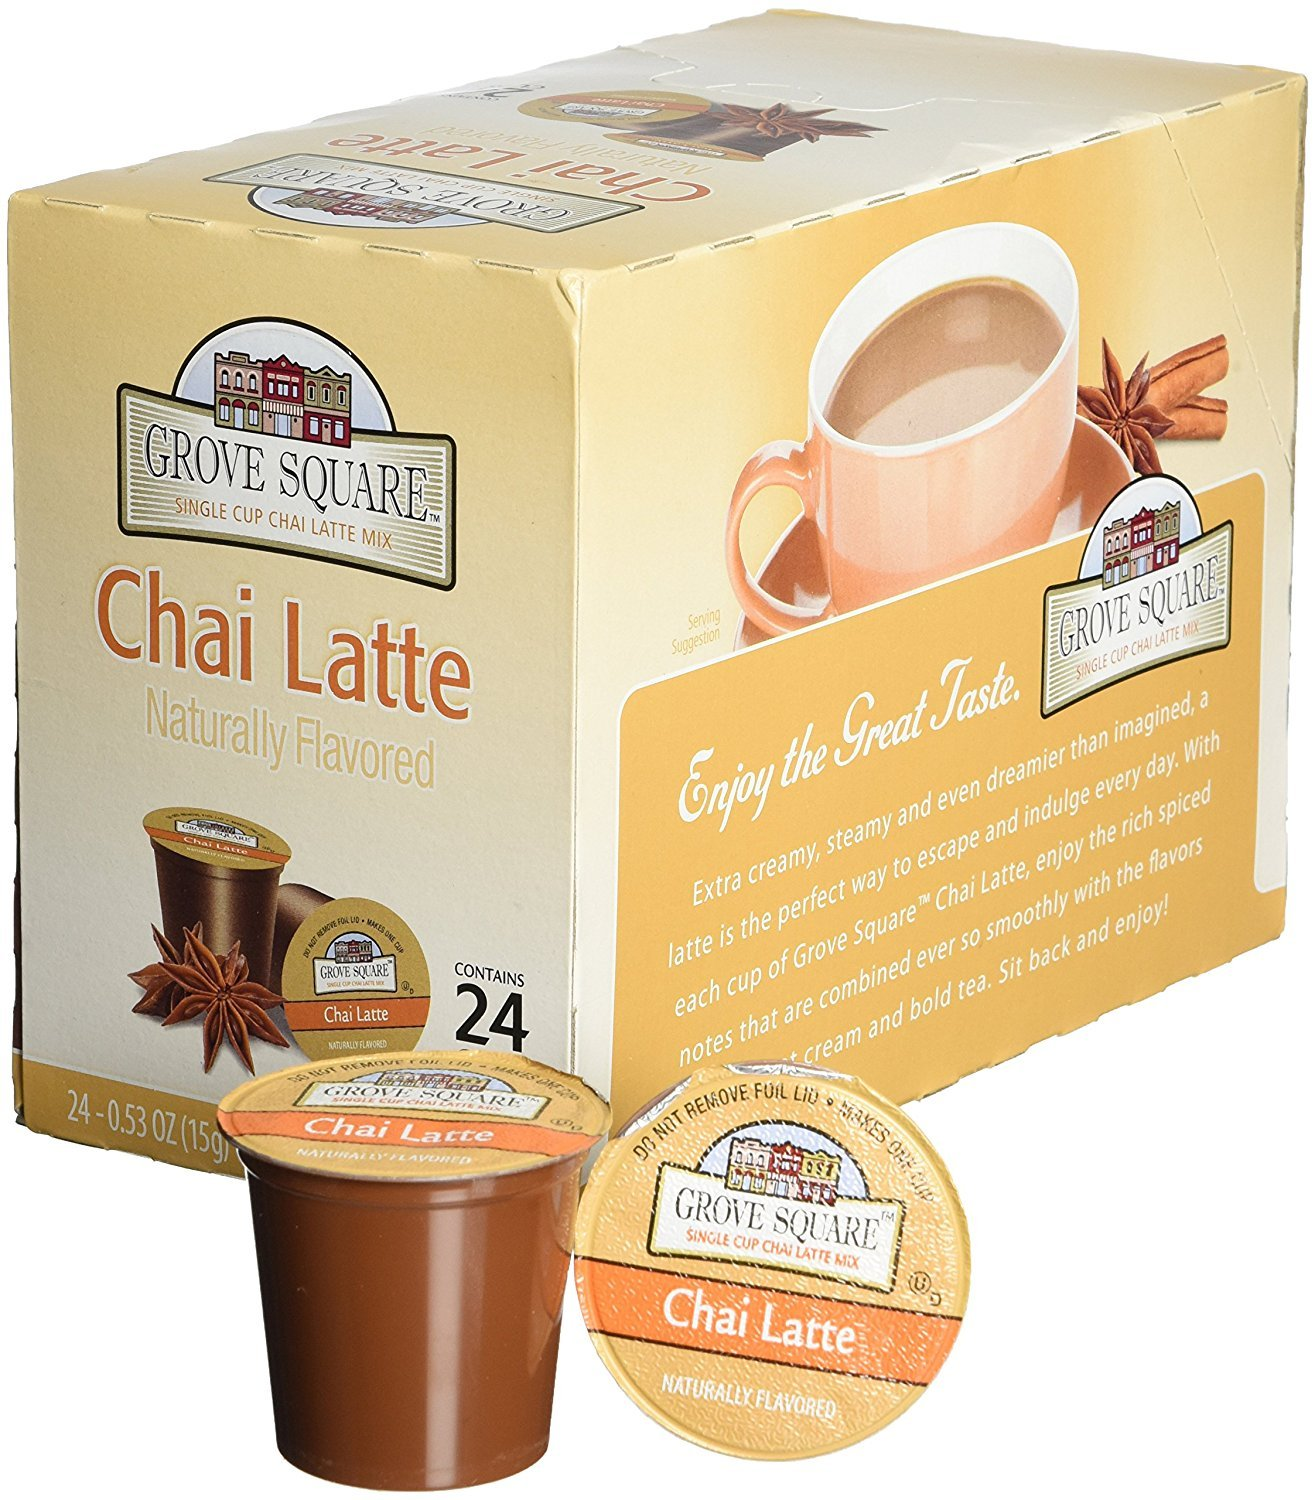 Grove Square Chai Latte, 48-count Single Serve Cup For